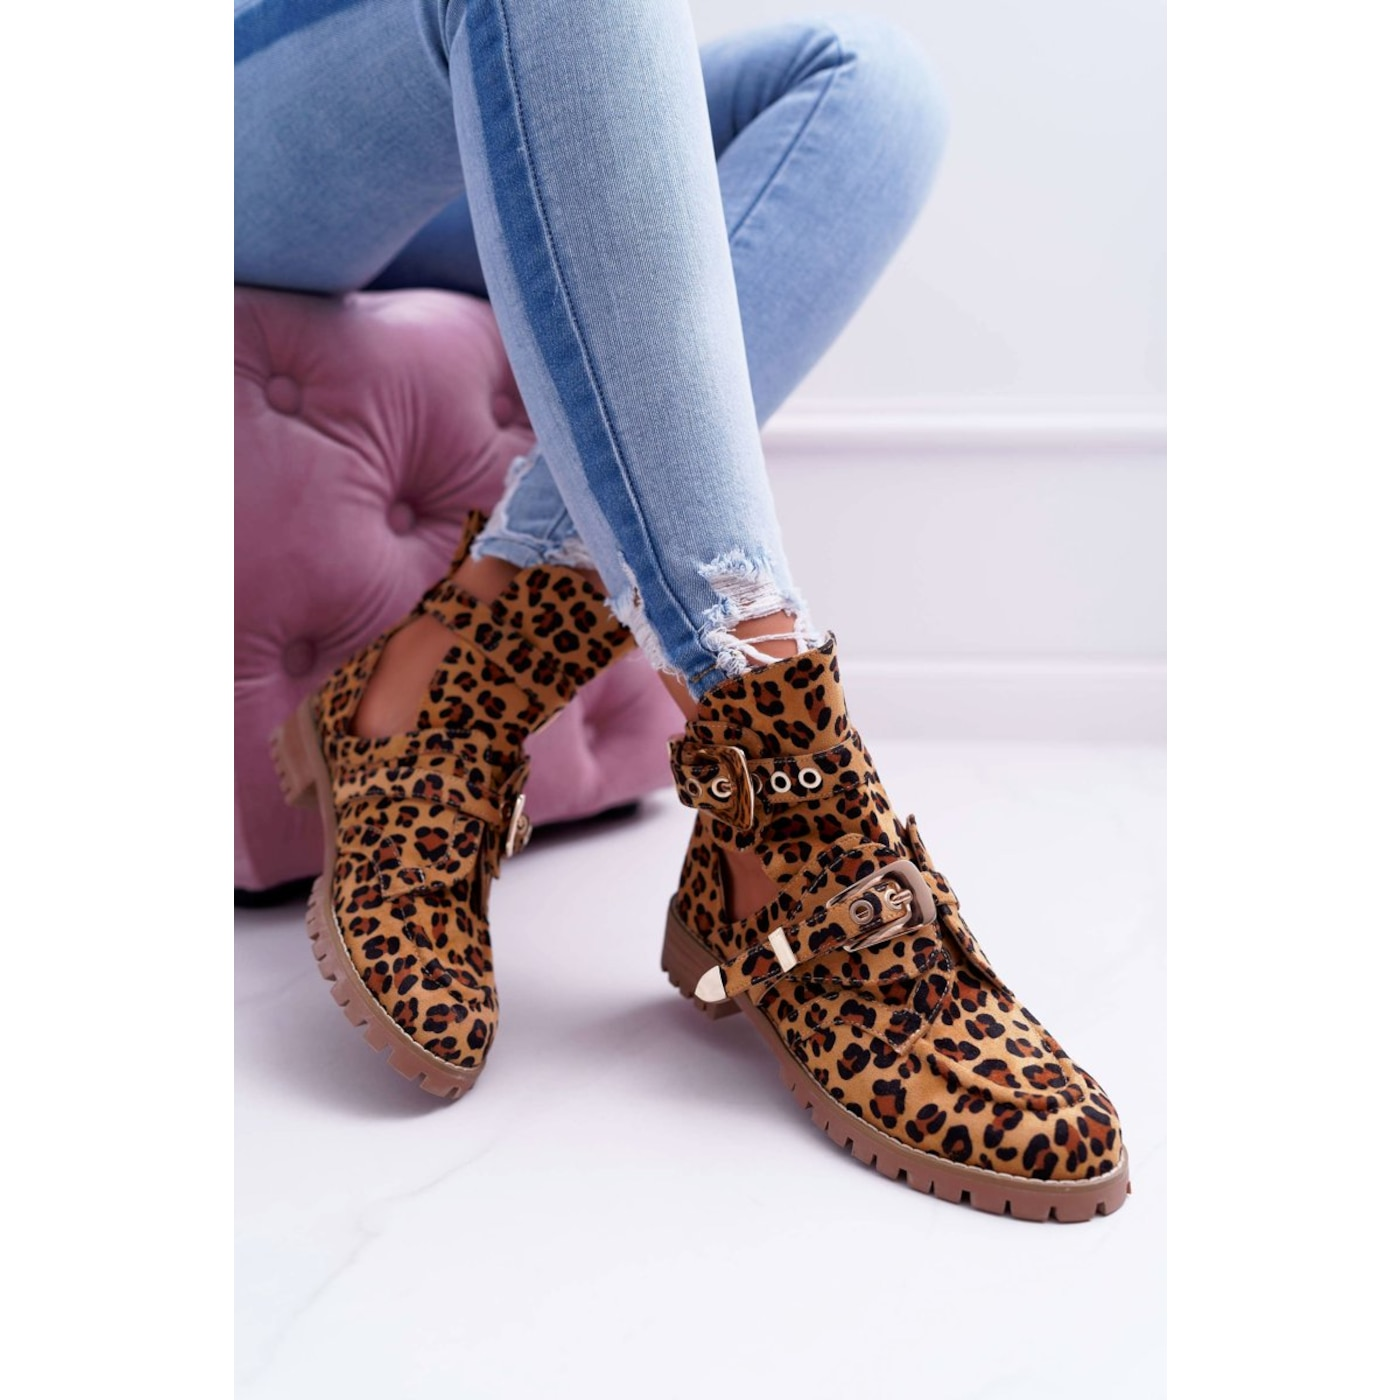 Lu Boo Suede Cut Out Ankle Boots Leopard Rock Girl